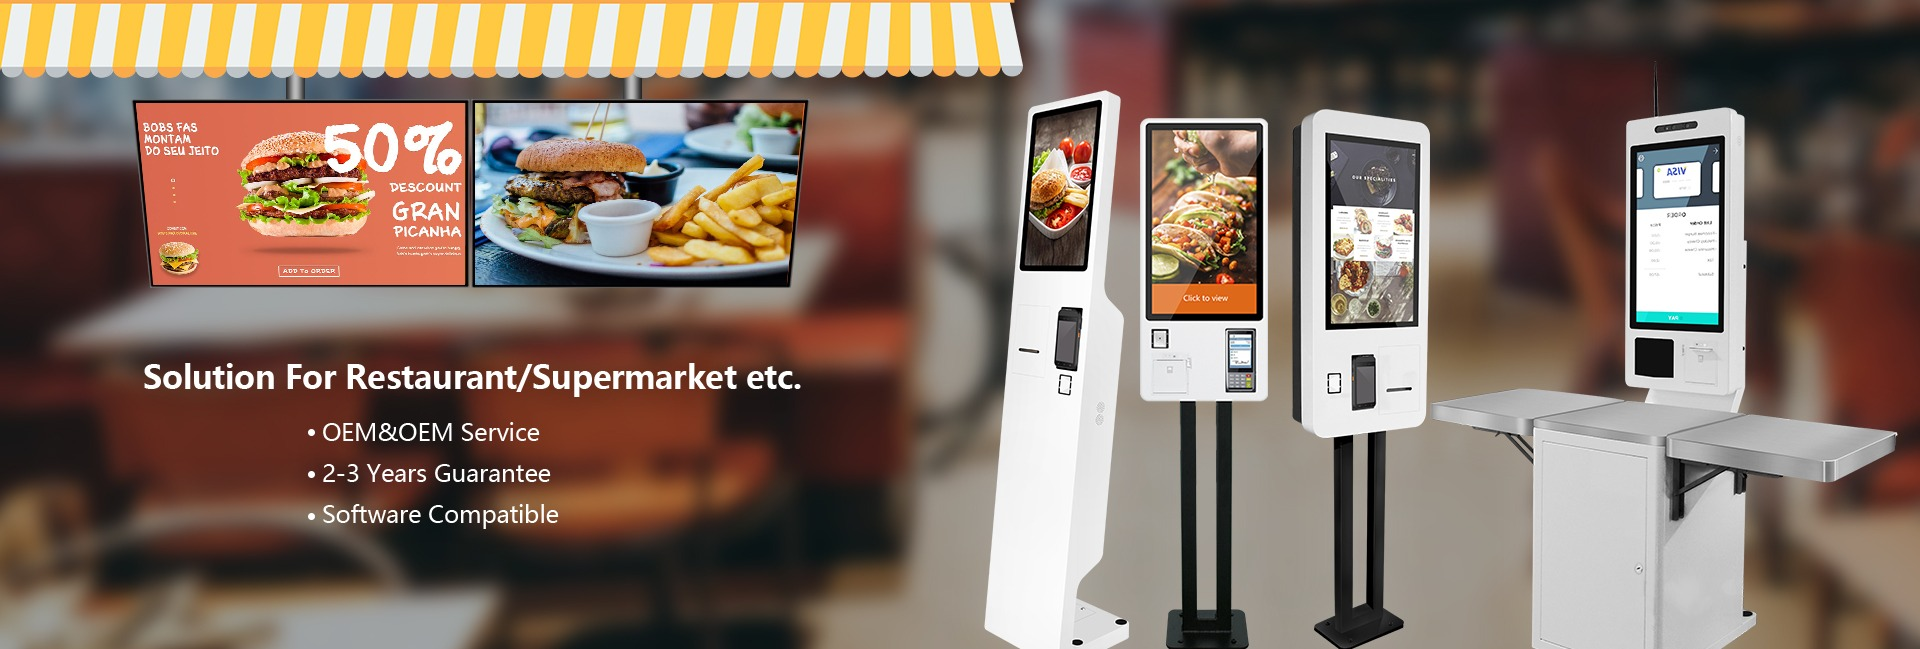 tablet epos system Digital Screens and self order kiosk